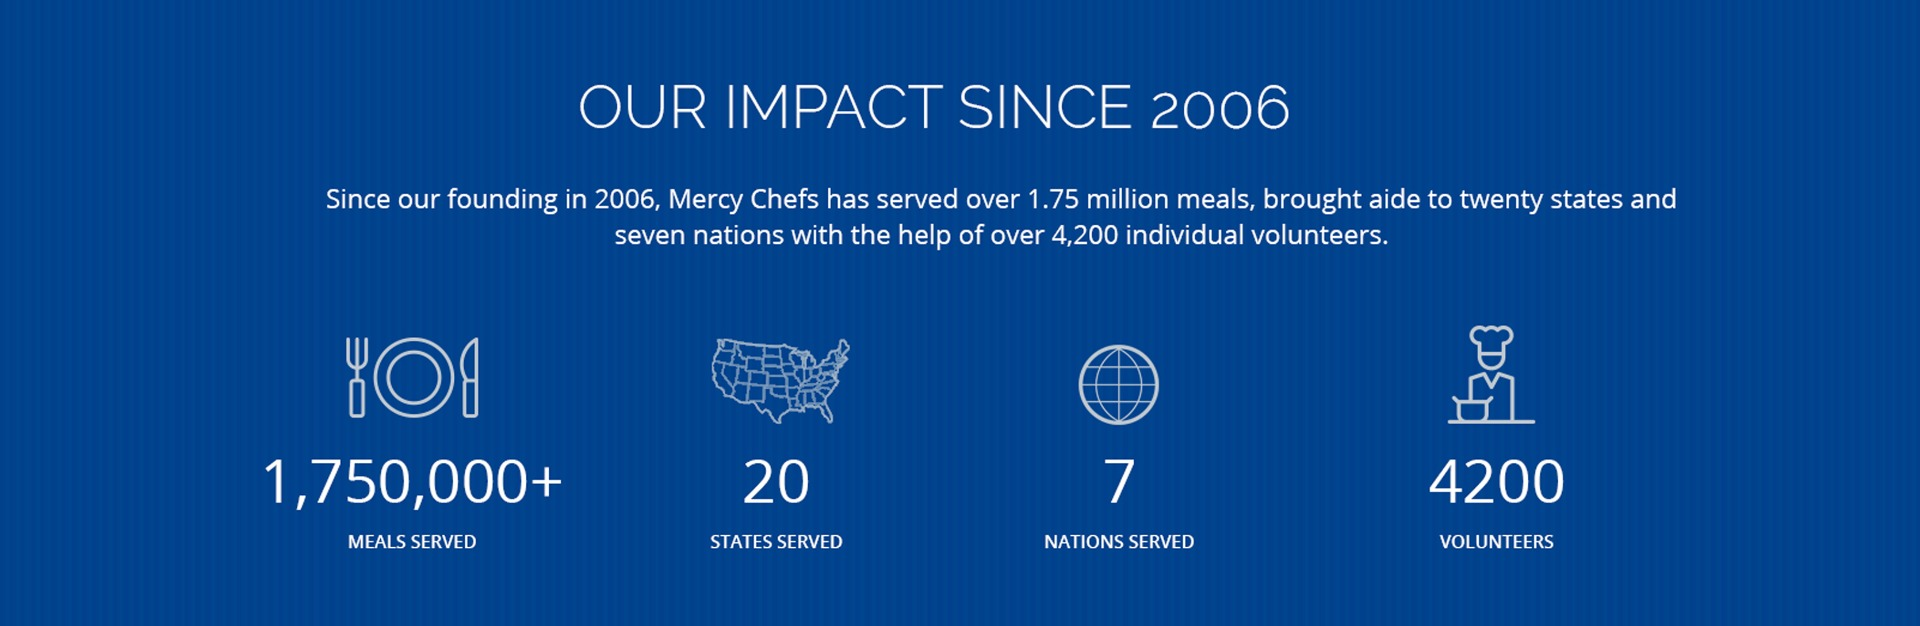 Our impact since 2006; 1,750,000+ meals served, 20 stated served, 7 nations served, 4200 volunteers